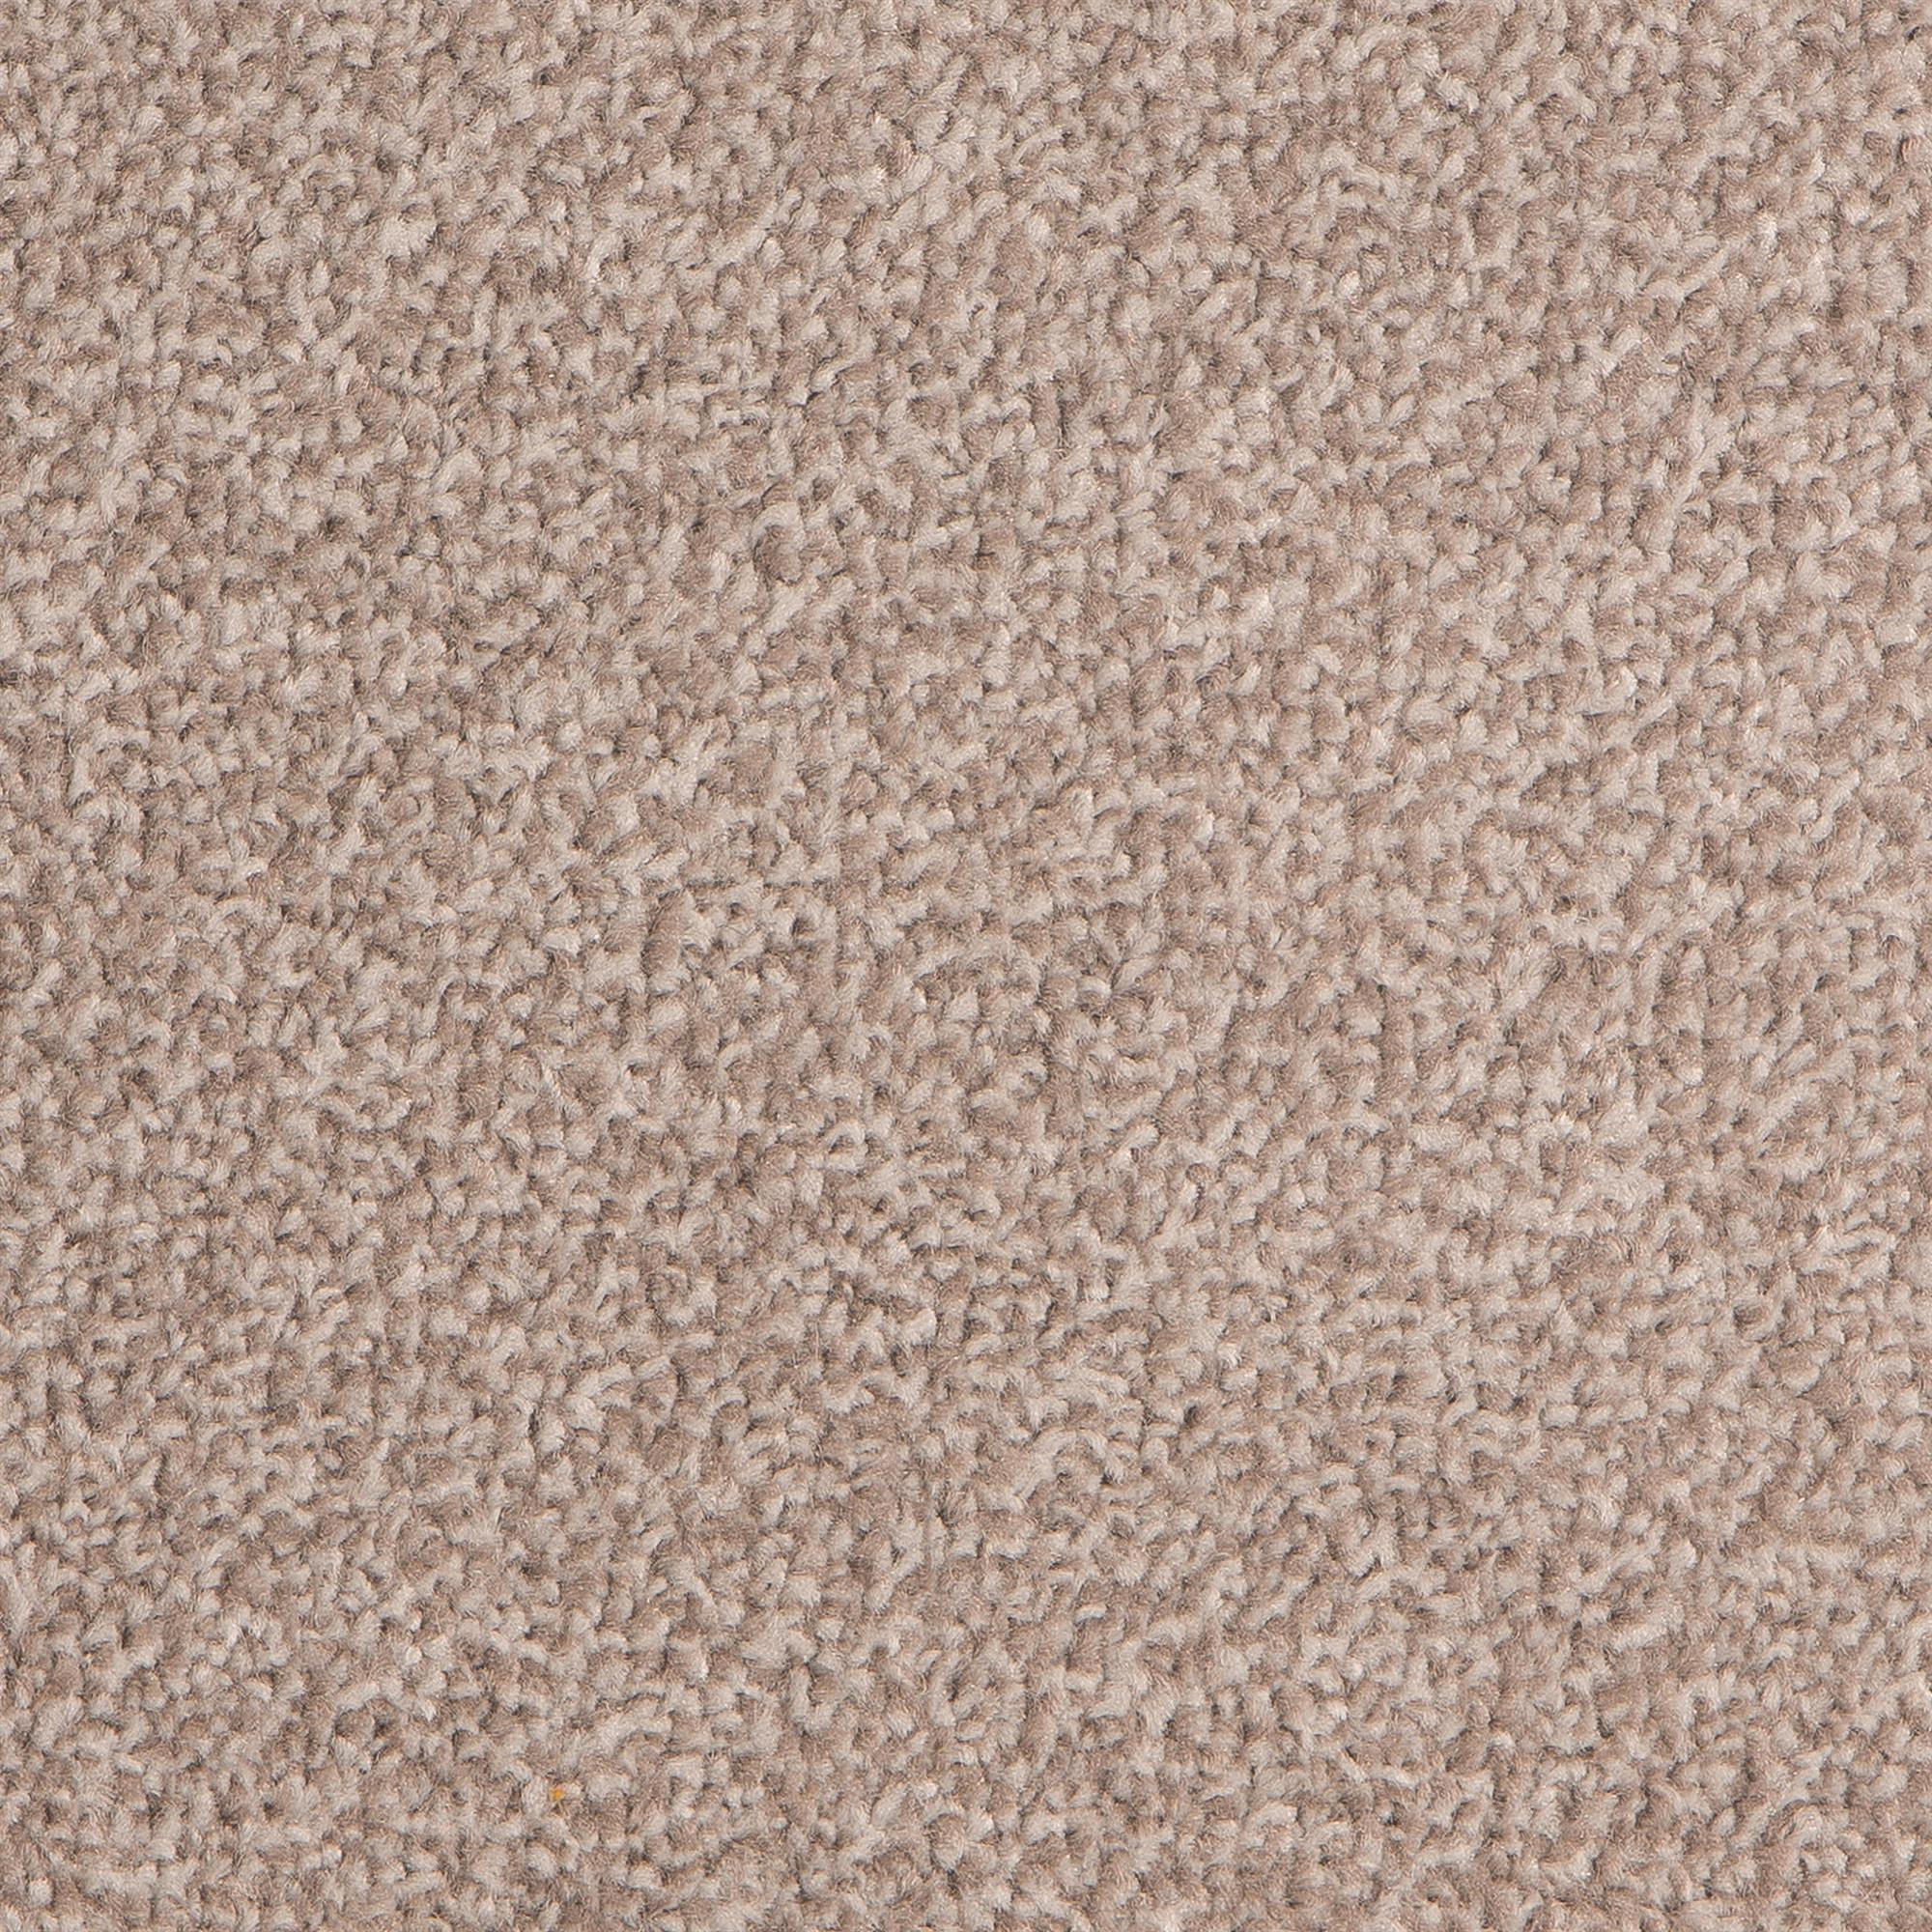 First Time Buyer Epic Carpet, Ash, swatch